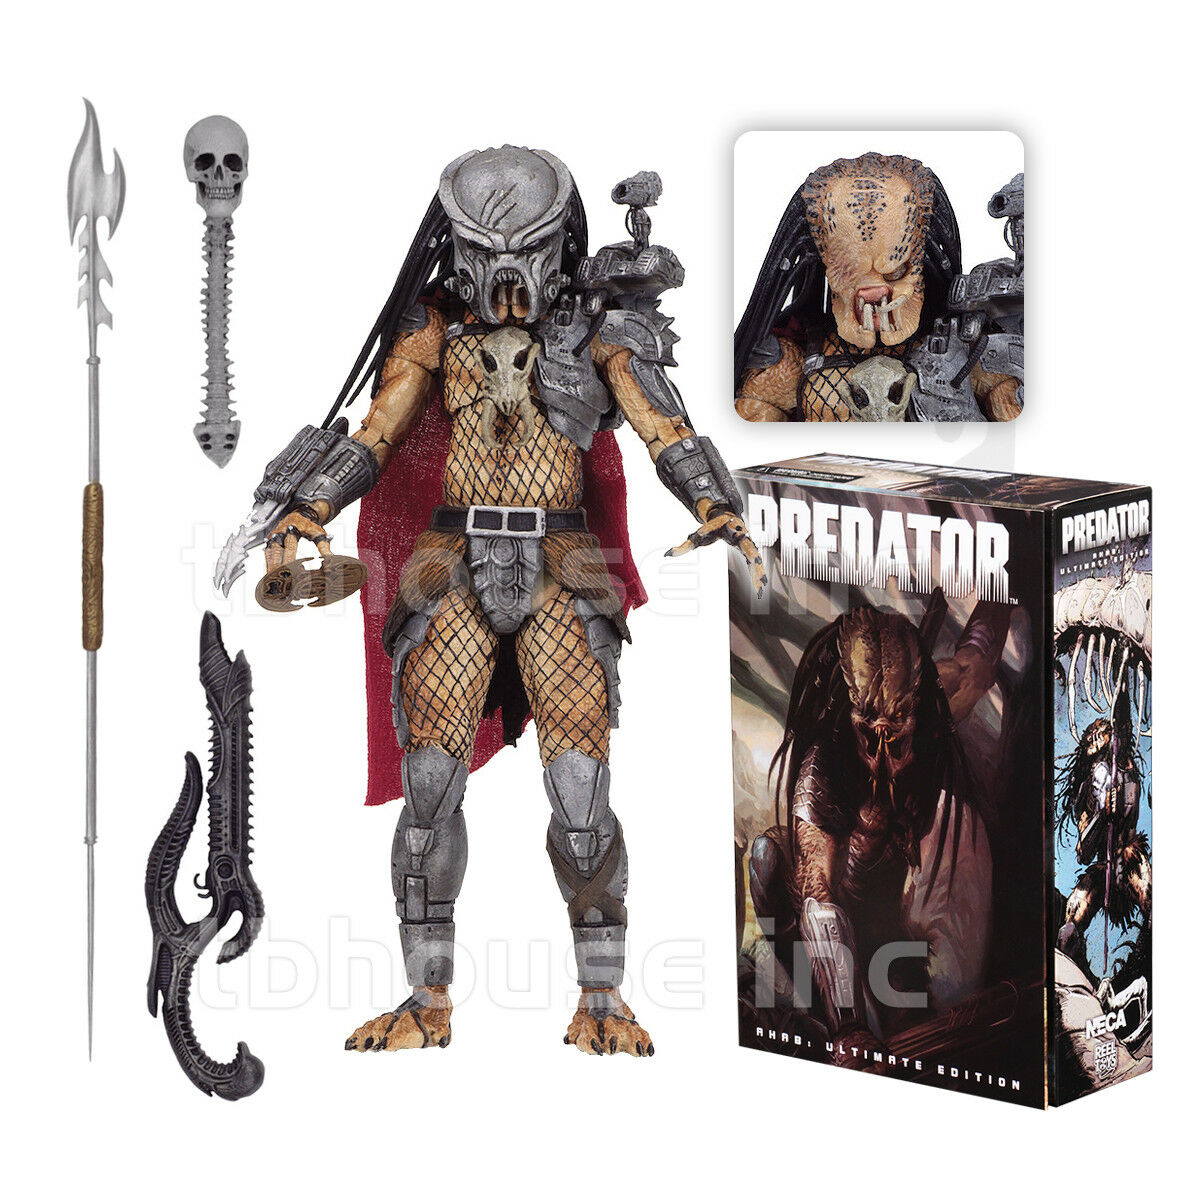 ULTIMATE AHAB figure ProssoATOR alien FIRE AND STONE dark horse LIFE DEATH vs NECA